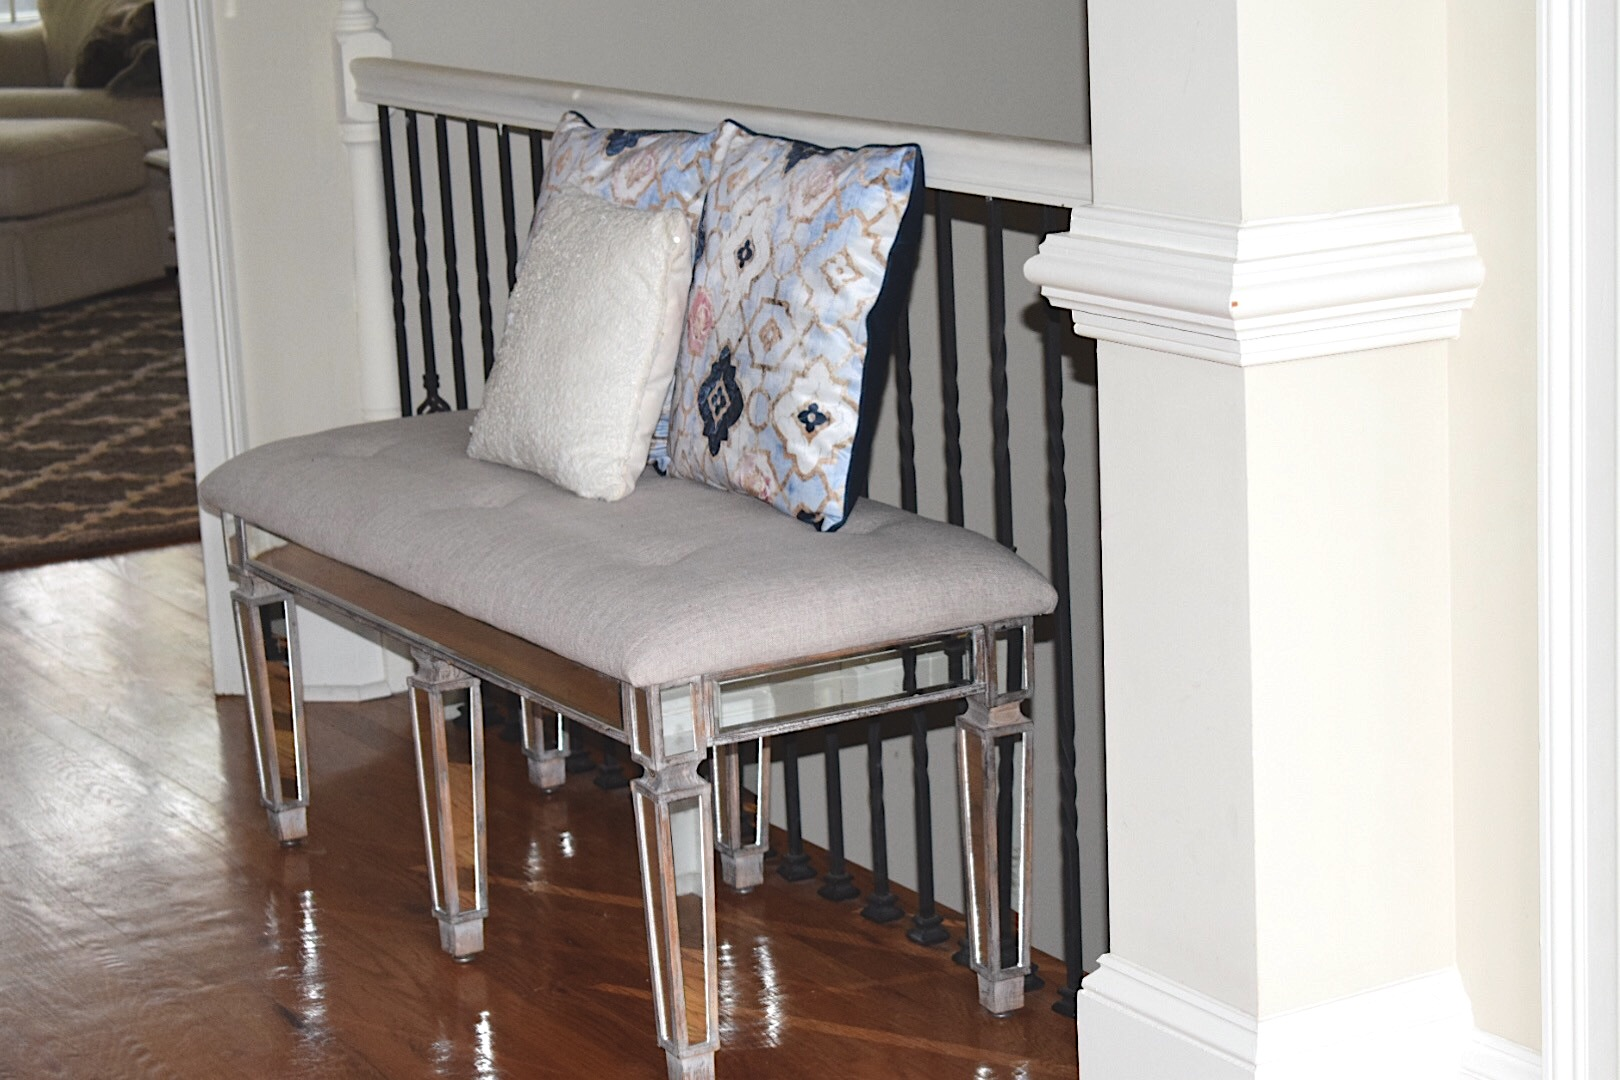 Oliver Gal Pillows on Mirrored Tufted Bench in Foyer - Crockpot Empire